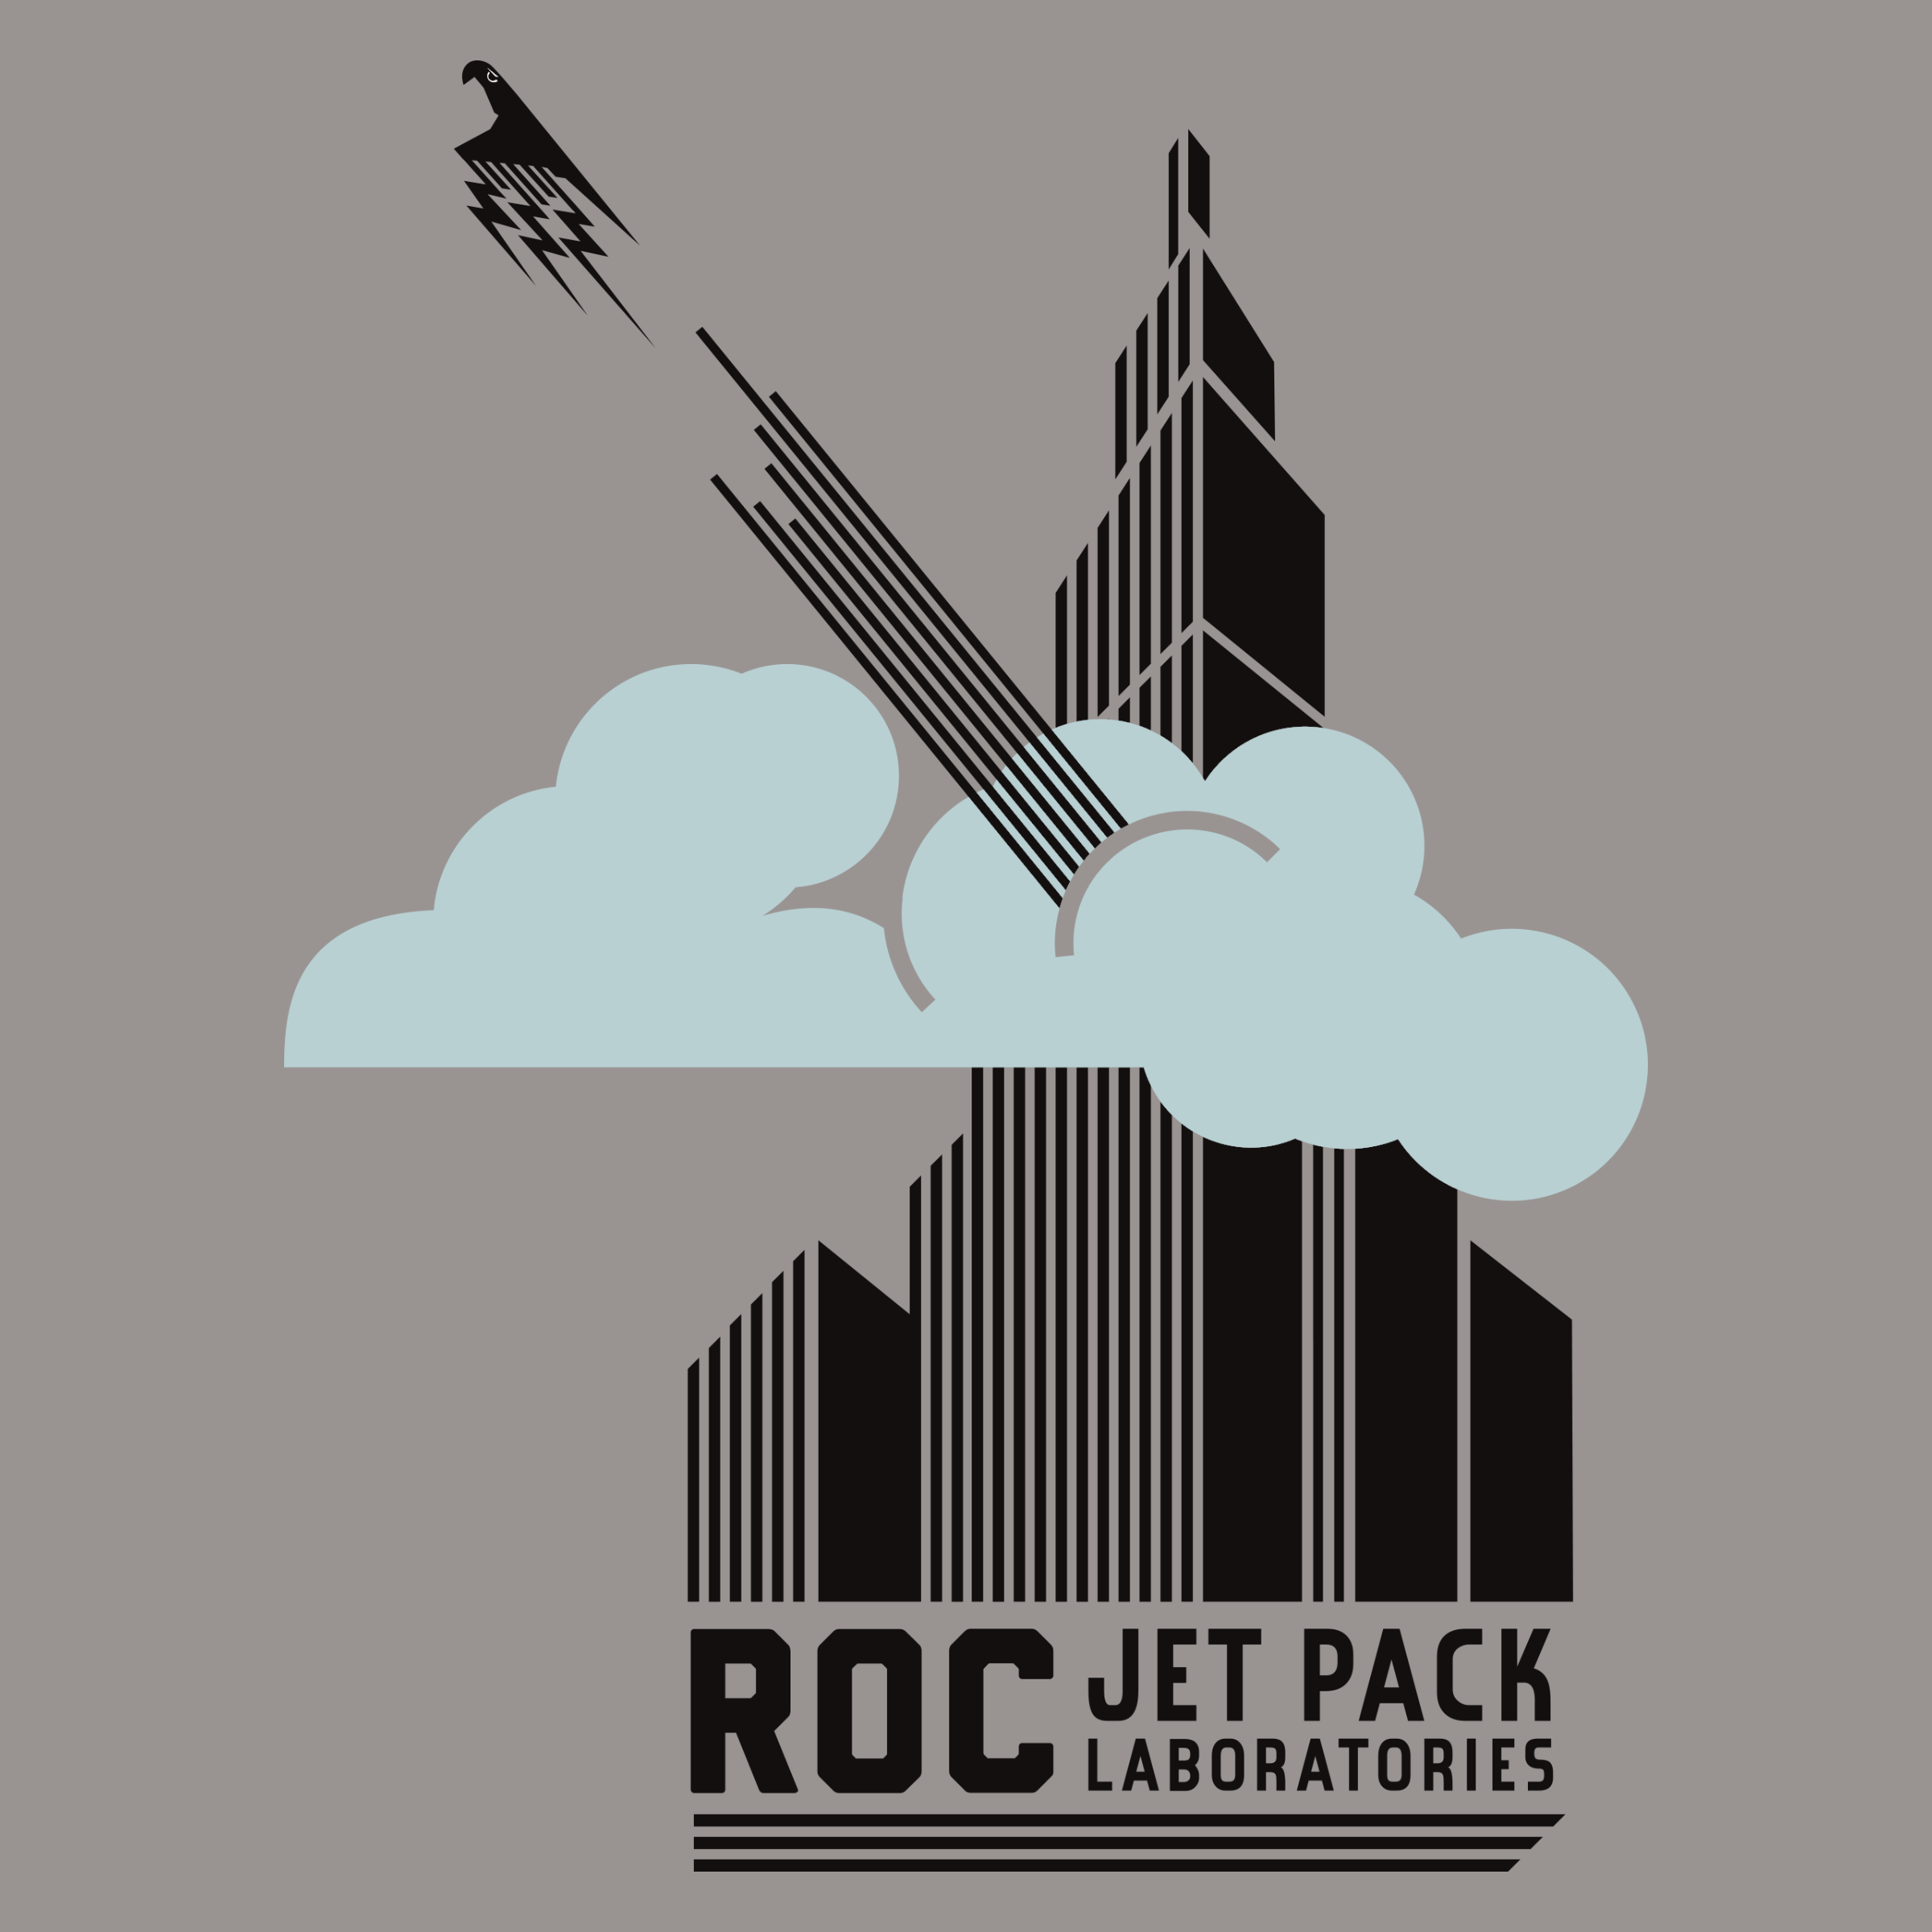 Roc Jet Pack Laboratories